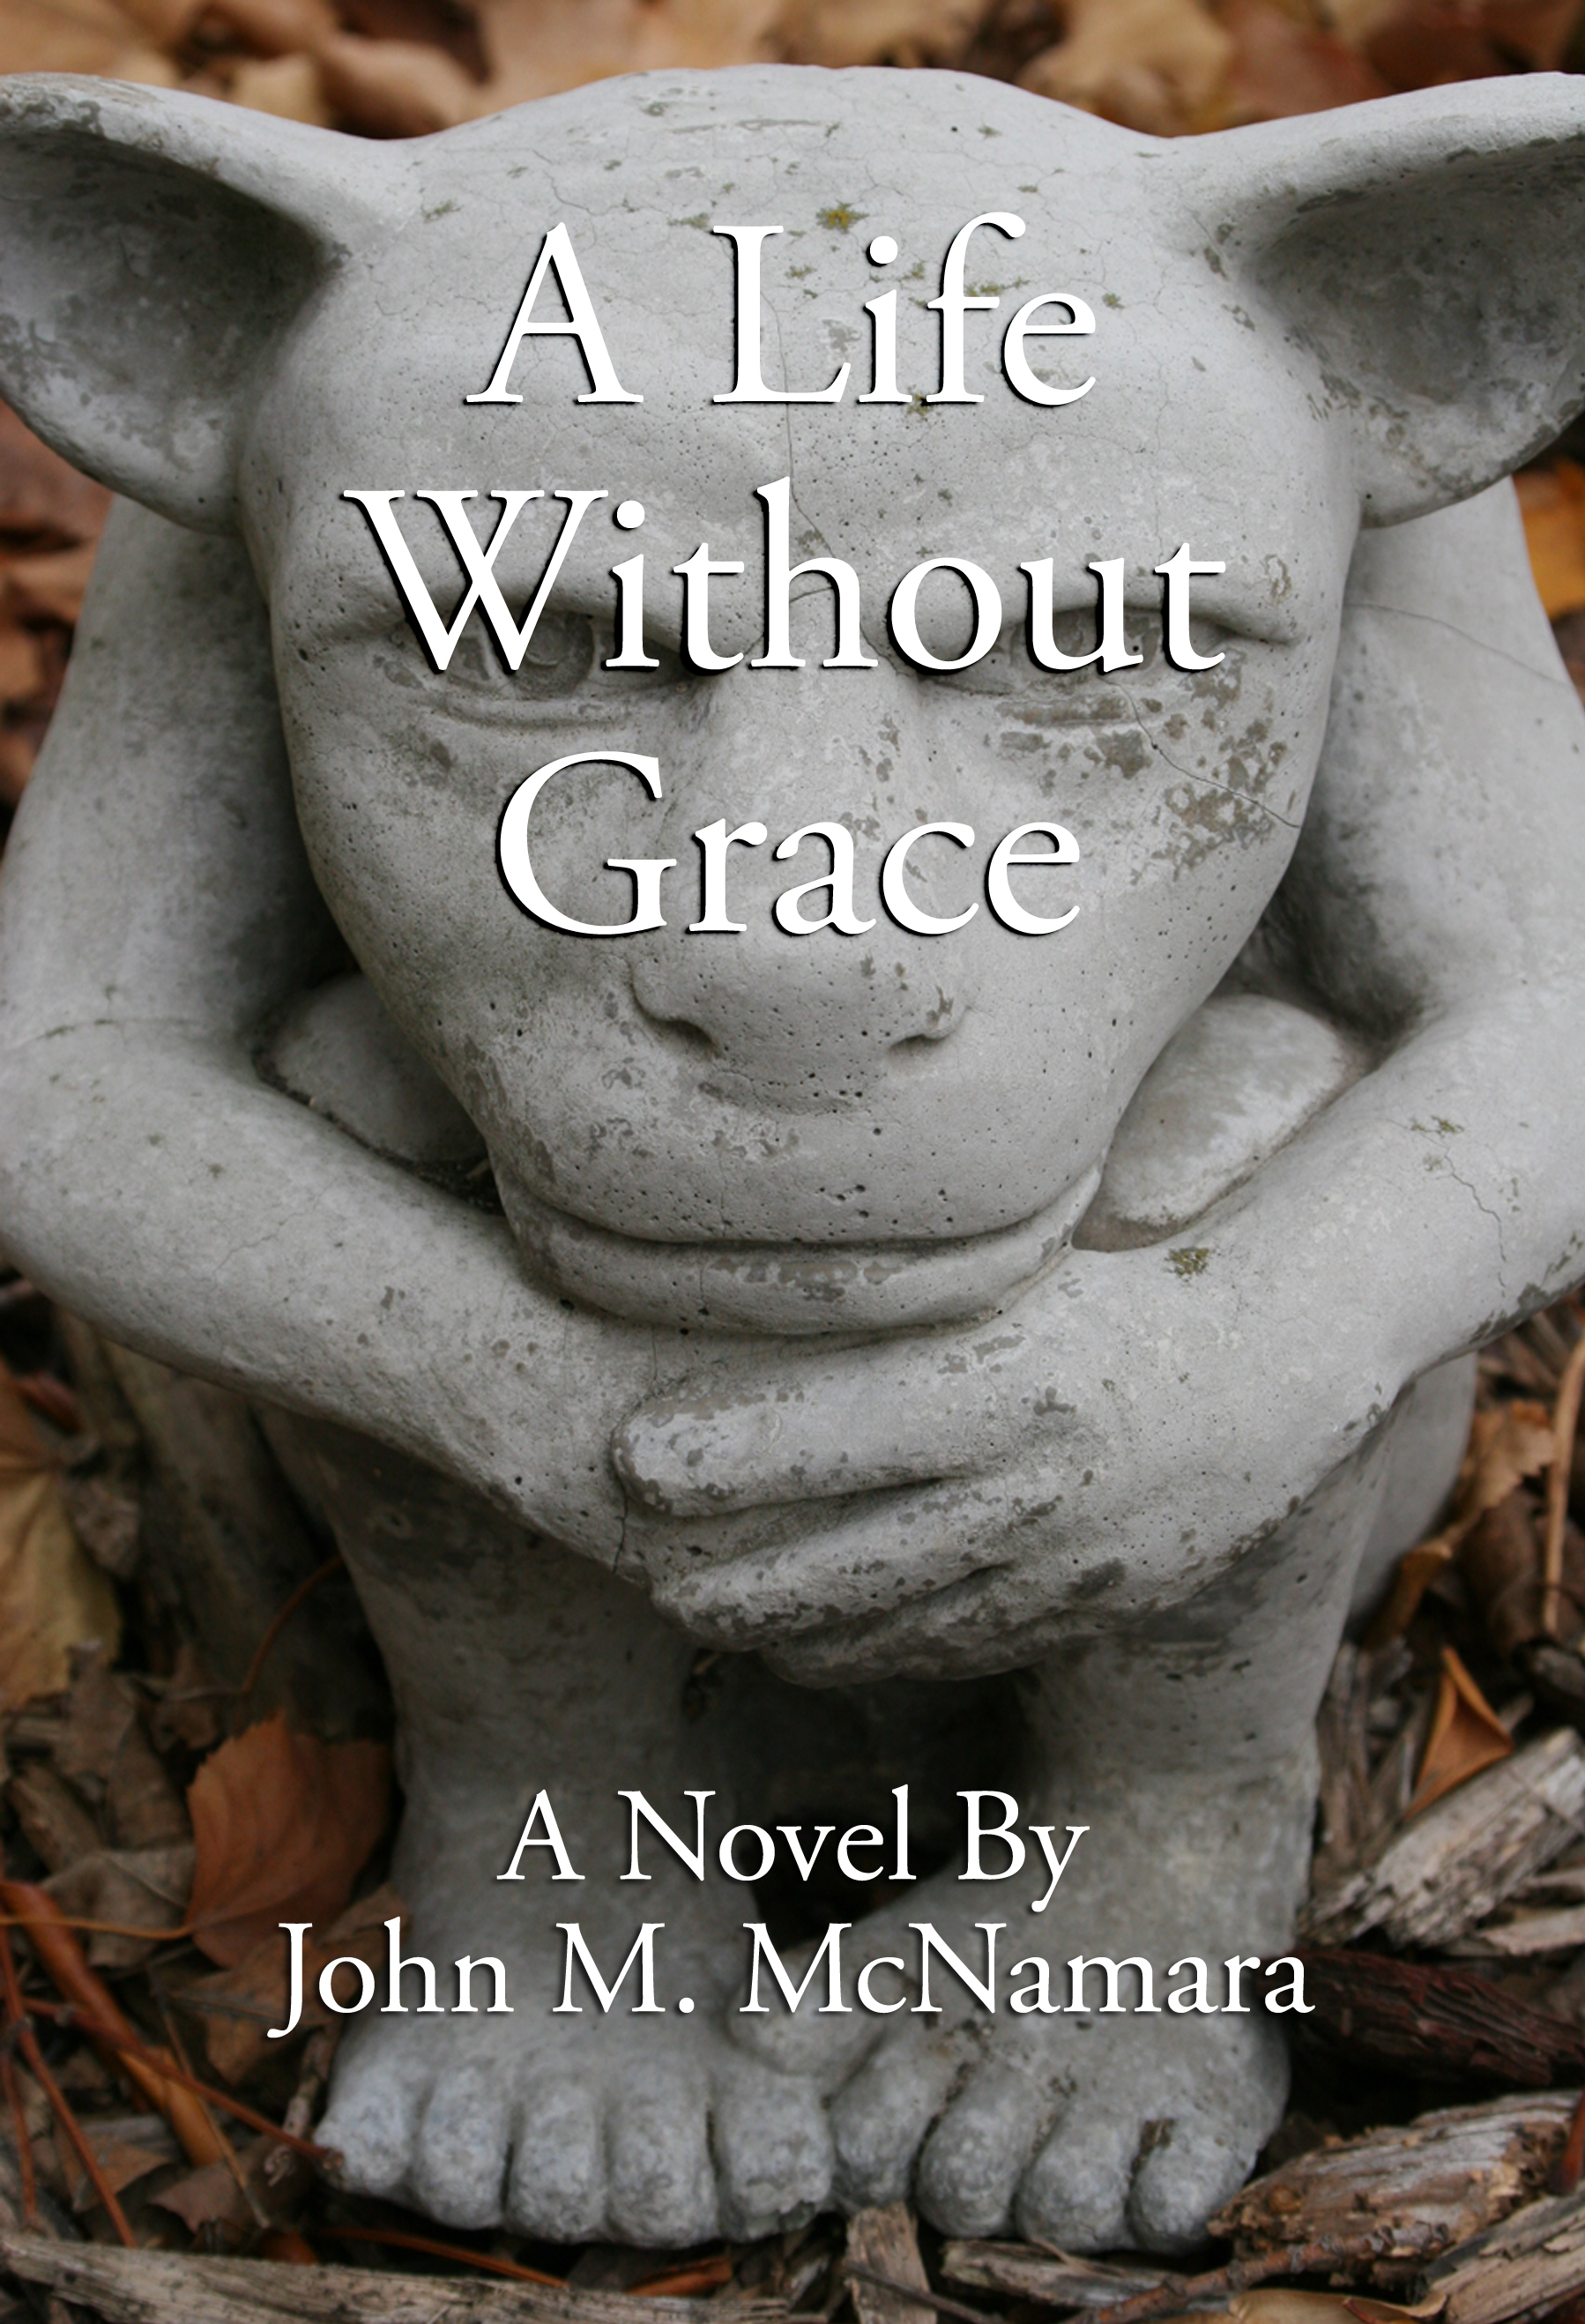 a-life-without-grace-cover-amazon-kindle-cover-march-2012-340a7110c79e6faccae1cb520b7fb10a6a36be46